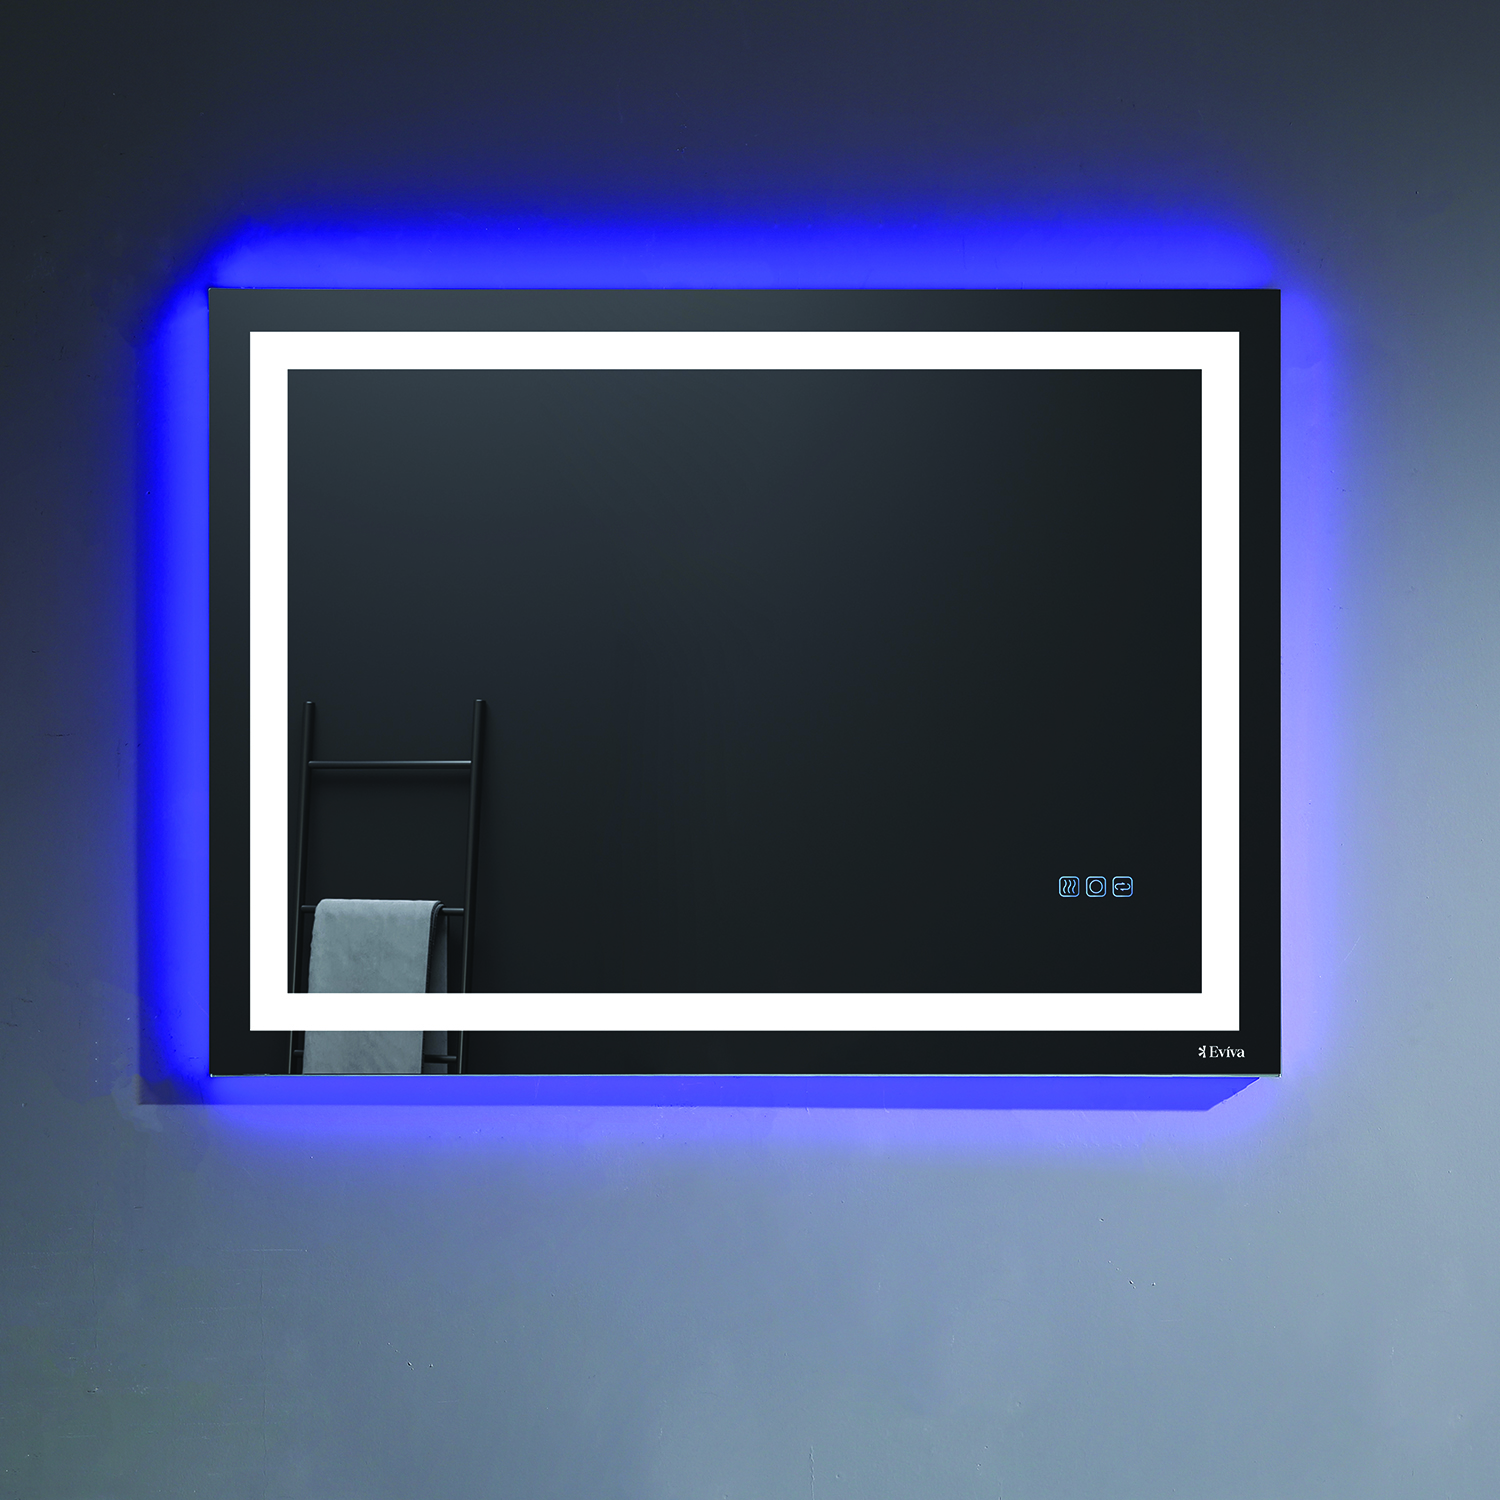 "EVMR52 42X30 LED A Main - Eviva EVMR52-42X30-LED Deco Piece Wall Mounted Lighted Bathroom Vanity, Backlit LED Mirror with Frame Lights, 42"" W X 30"" H"